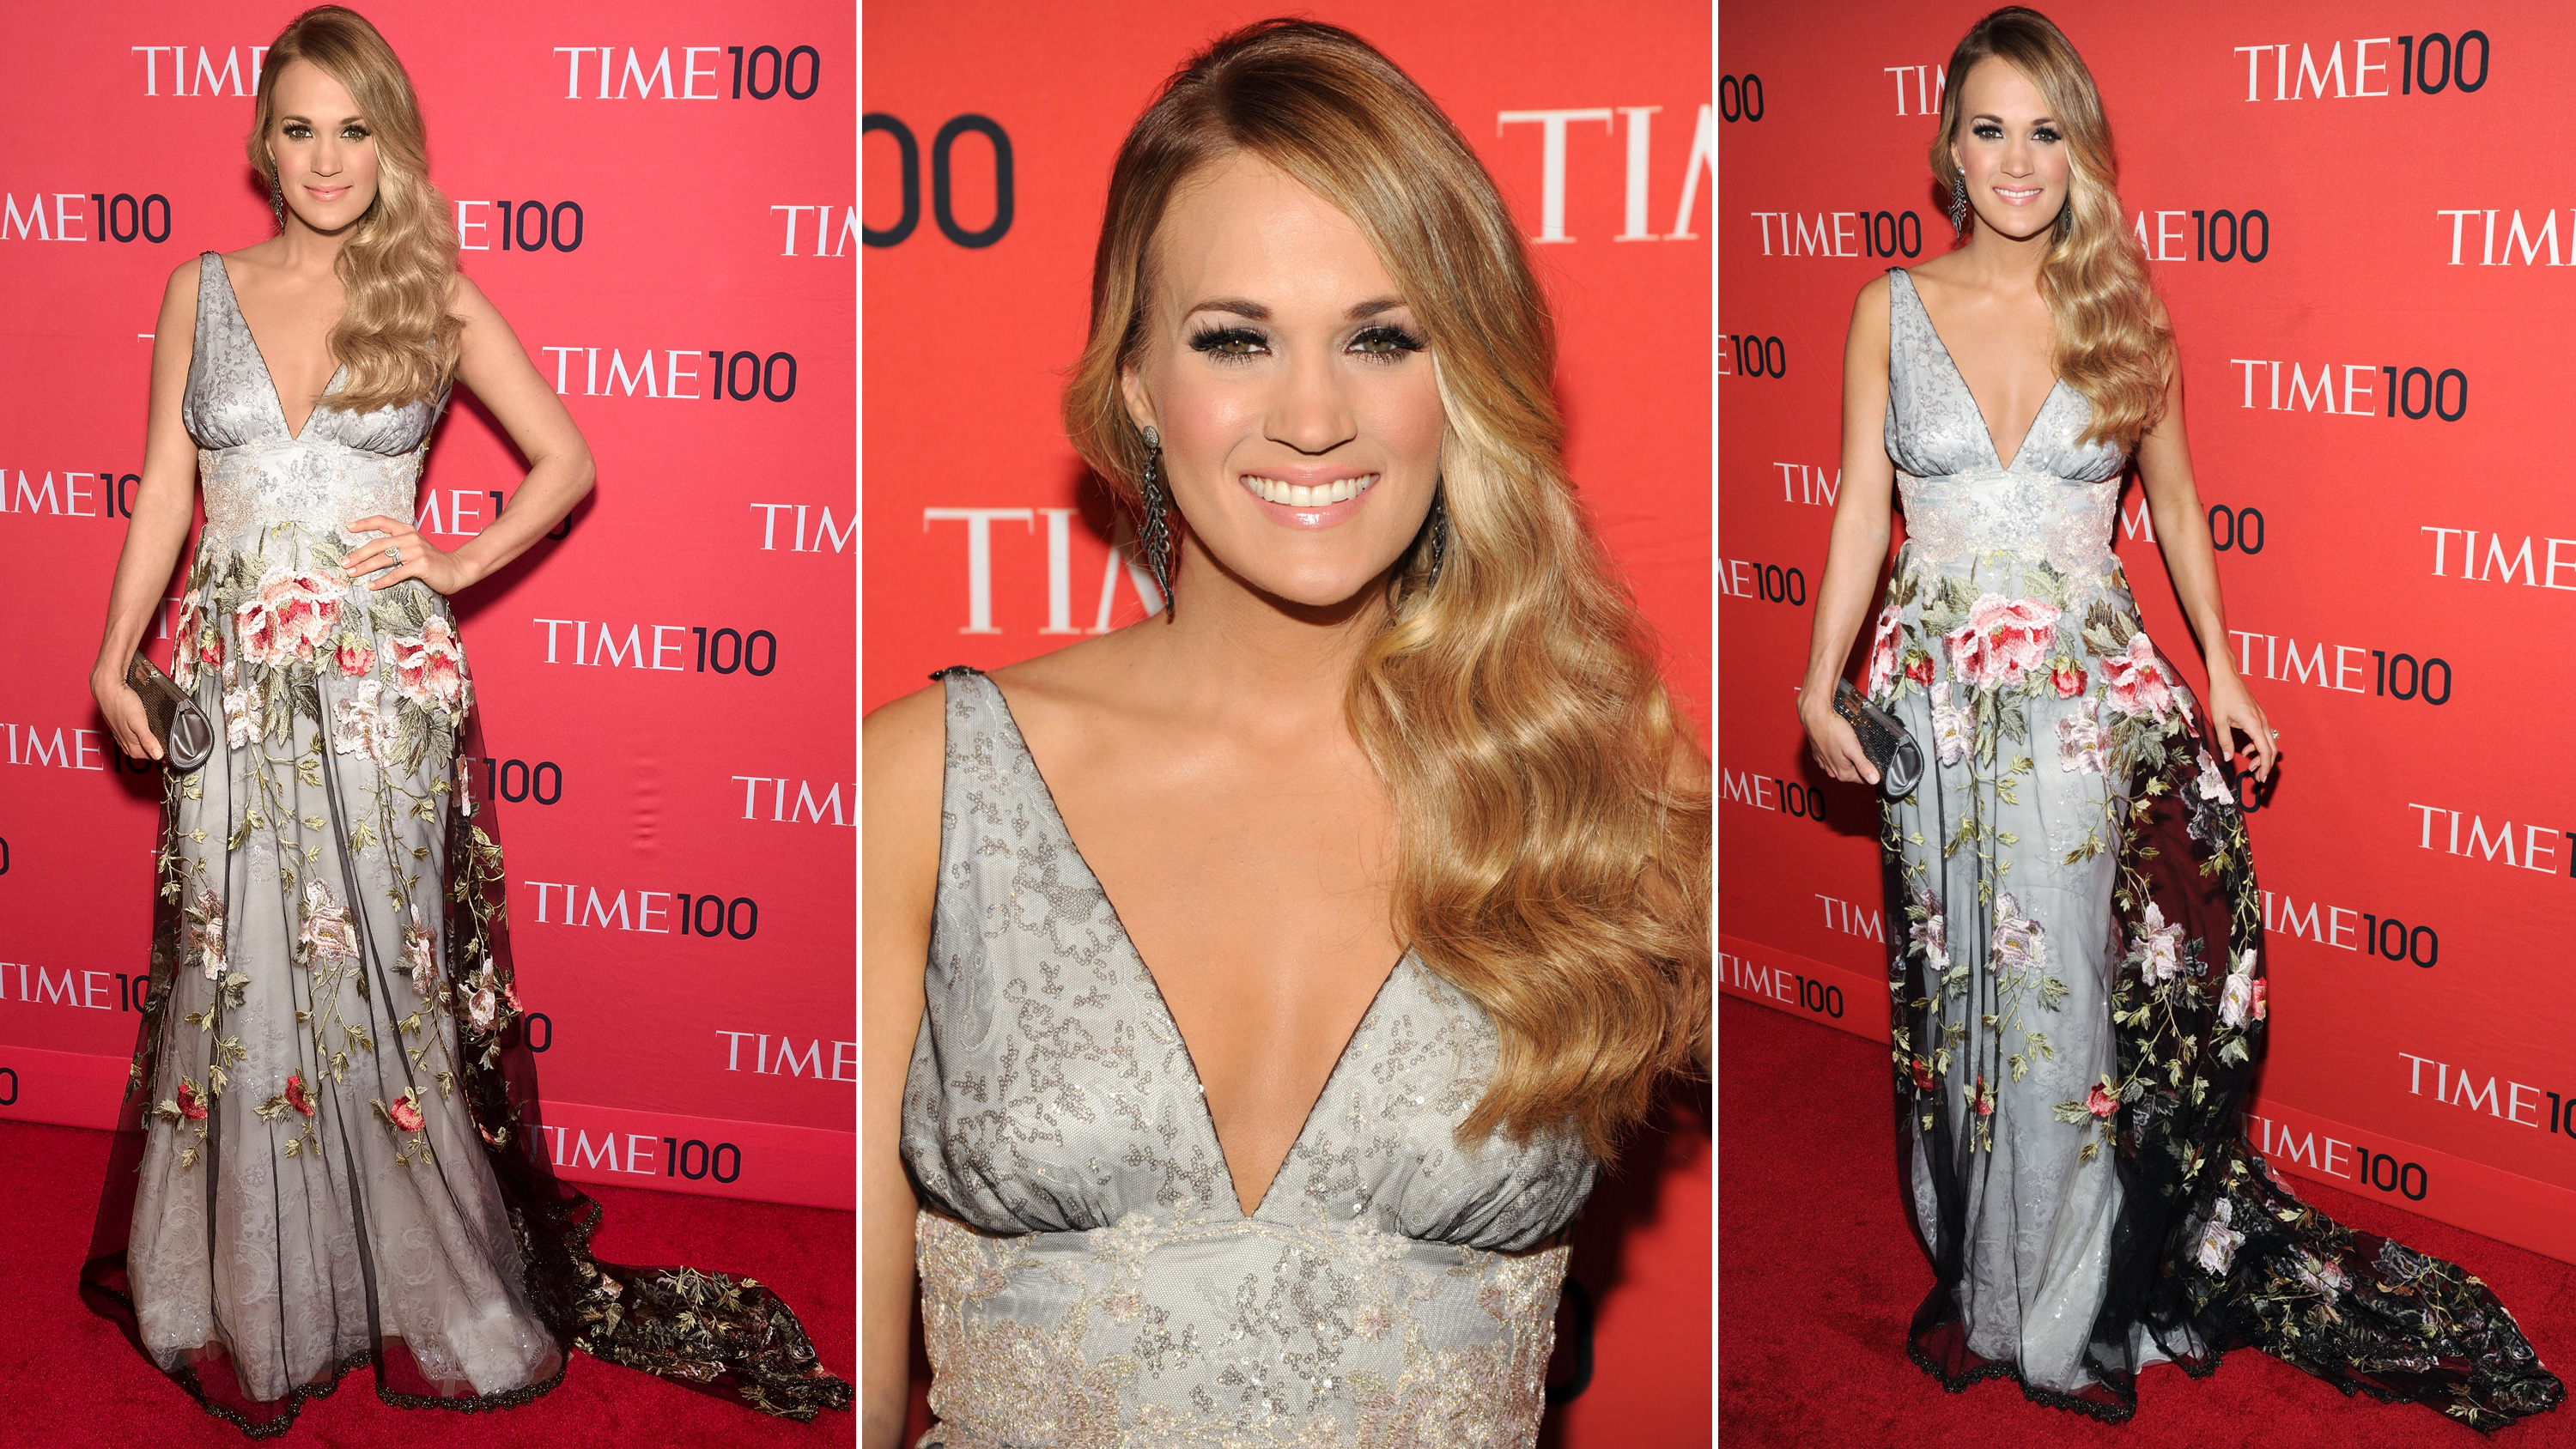 carrie-underwood-time-100-gown